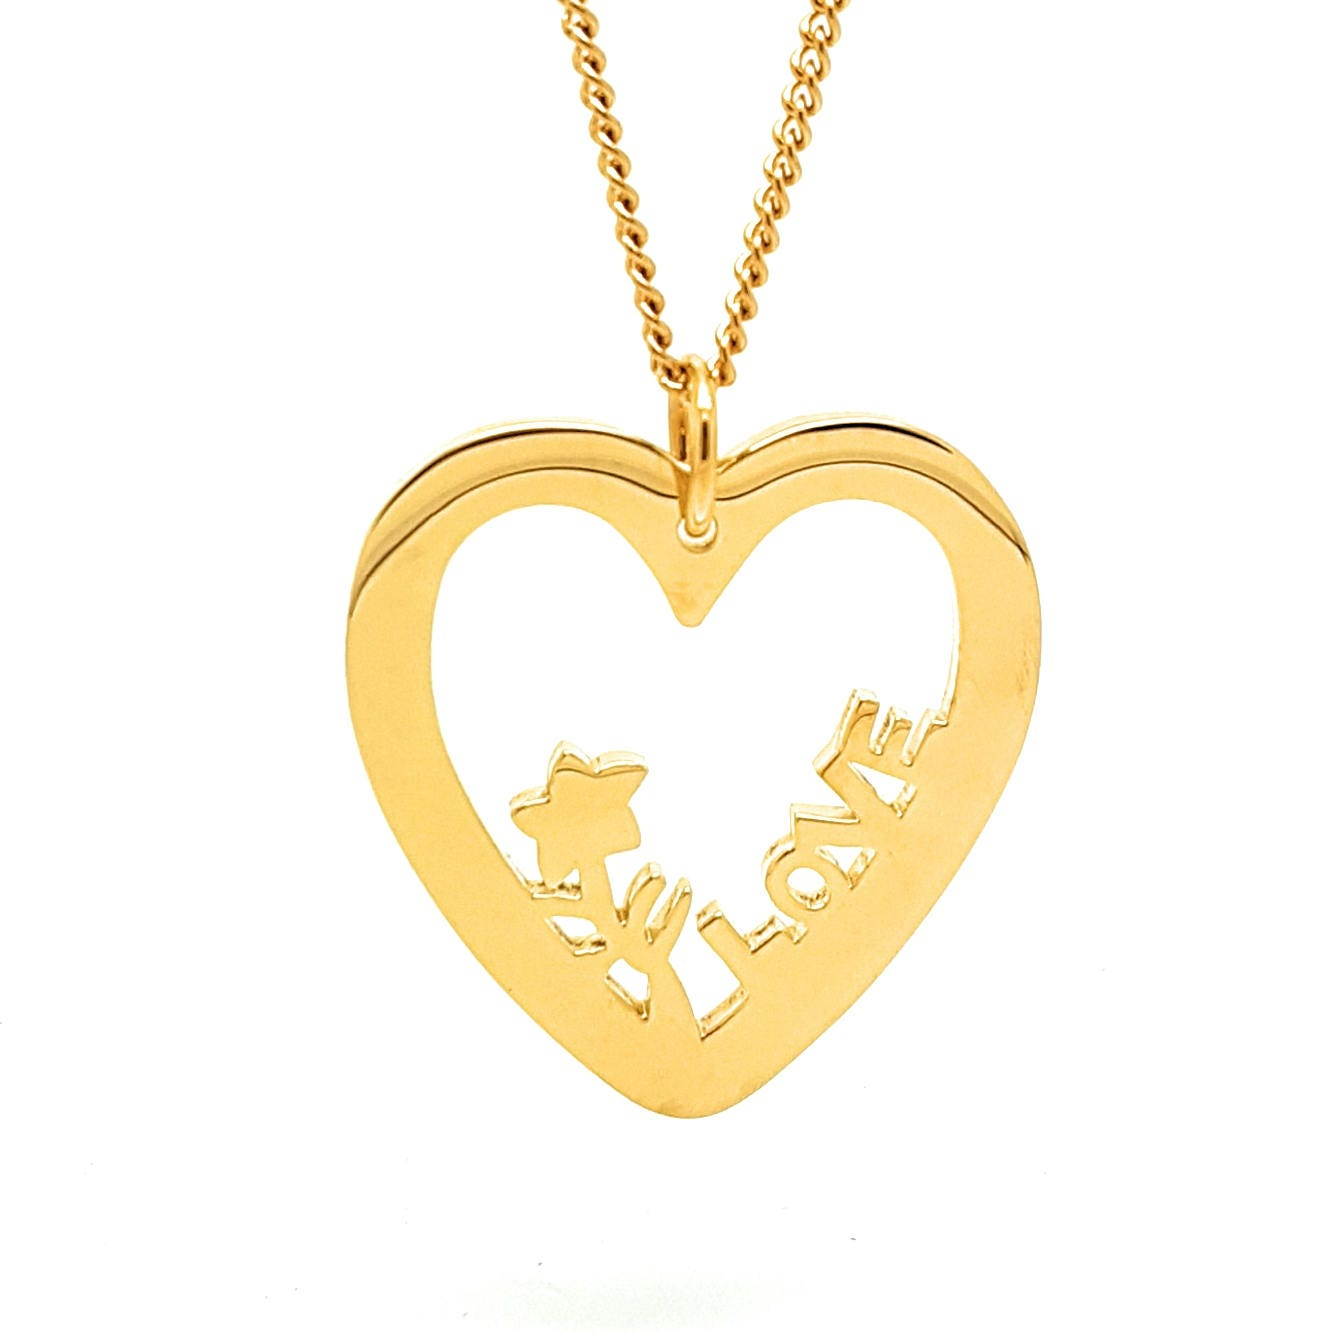 Coorabell Crafts Gold Love Heart Pendant With Necklace Flower And